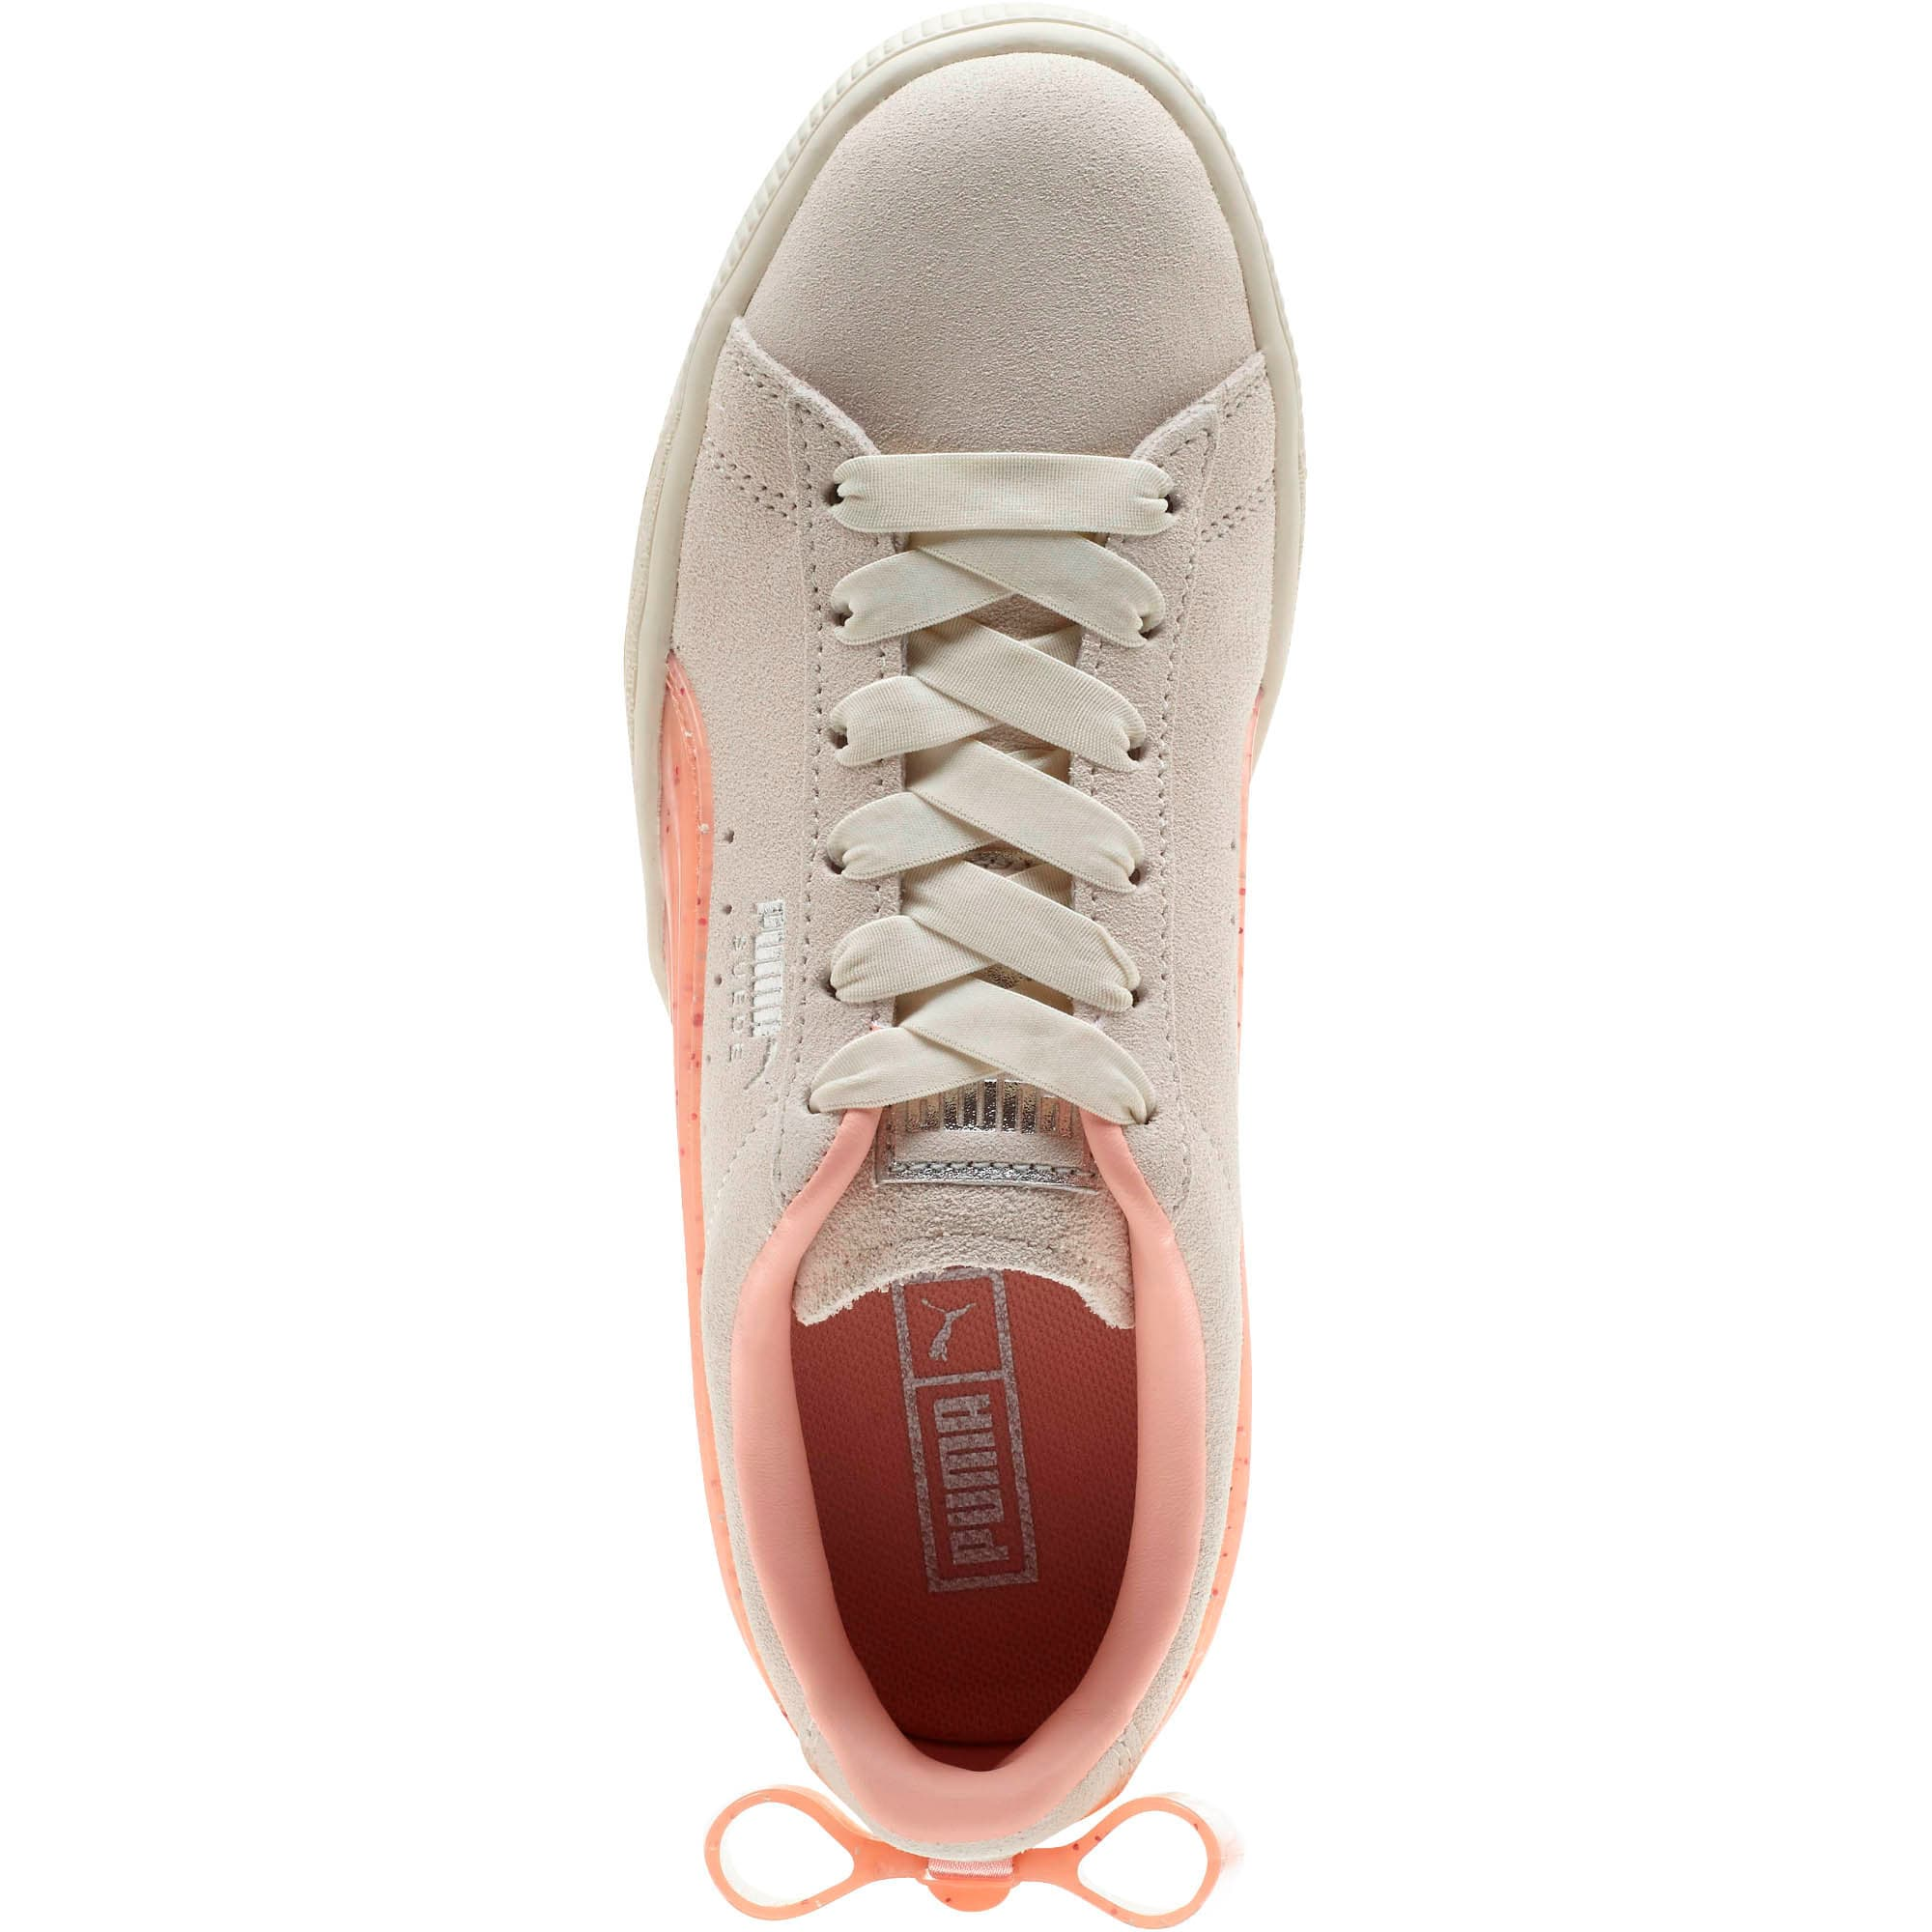 Miniatura 5 de Zapatos deportivos Suede Jelly Bow JR, Whis White-Peach Bud-Silver, mediano